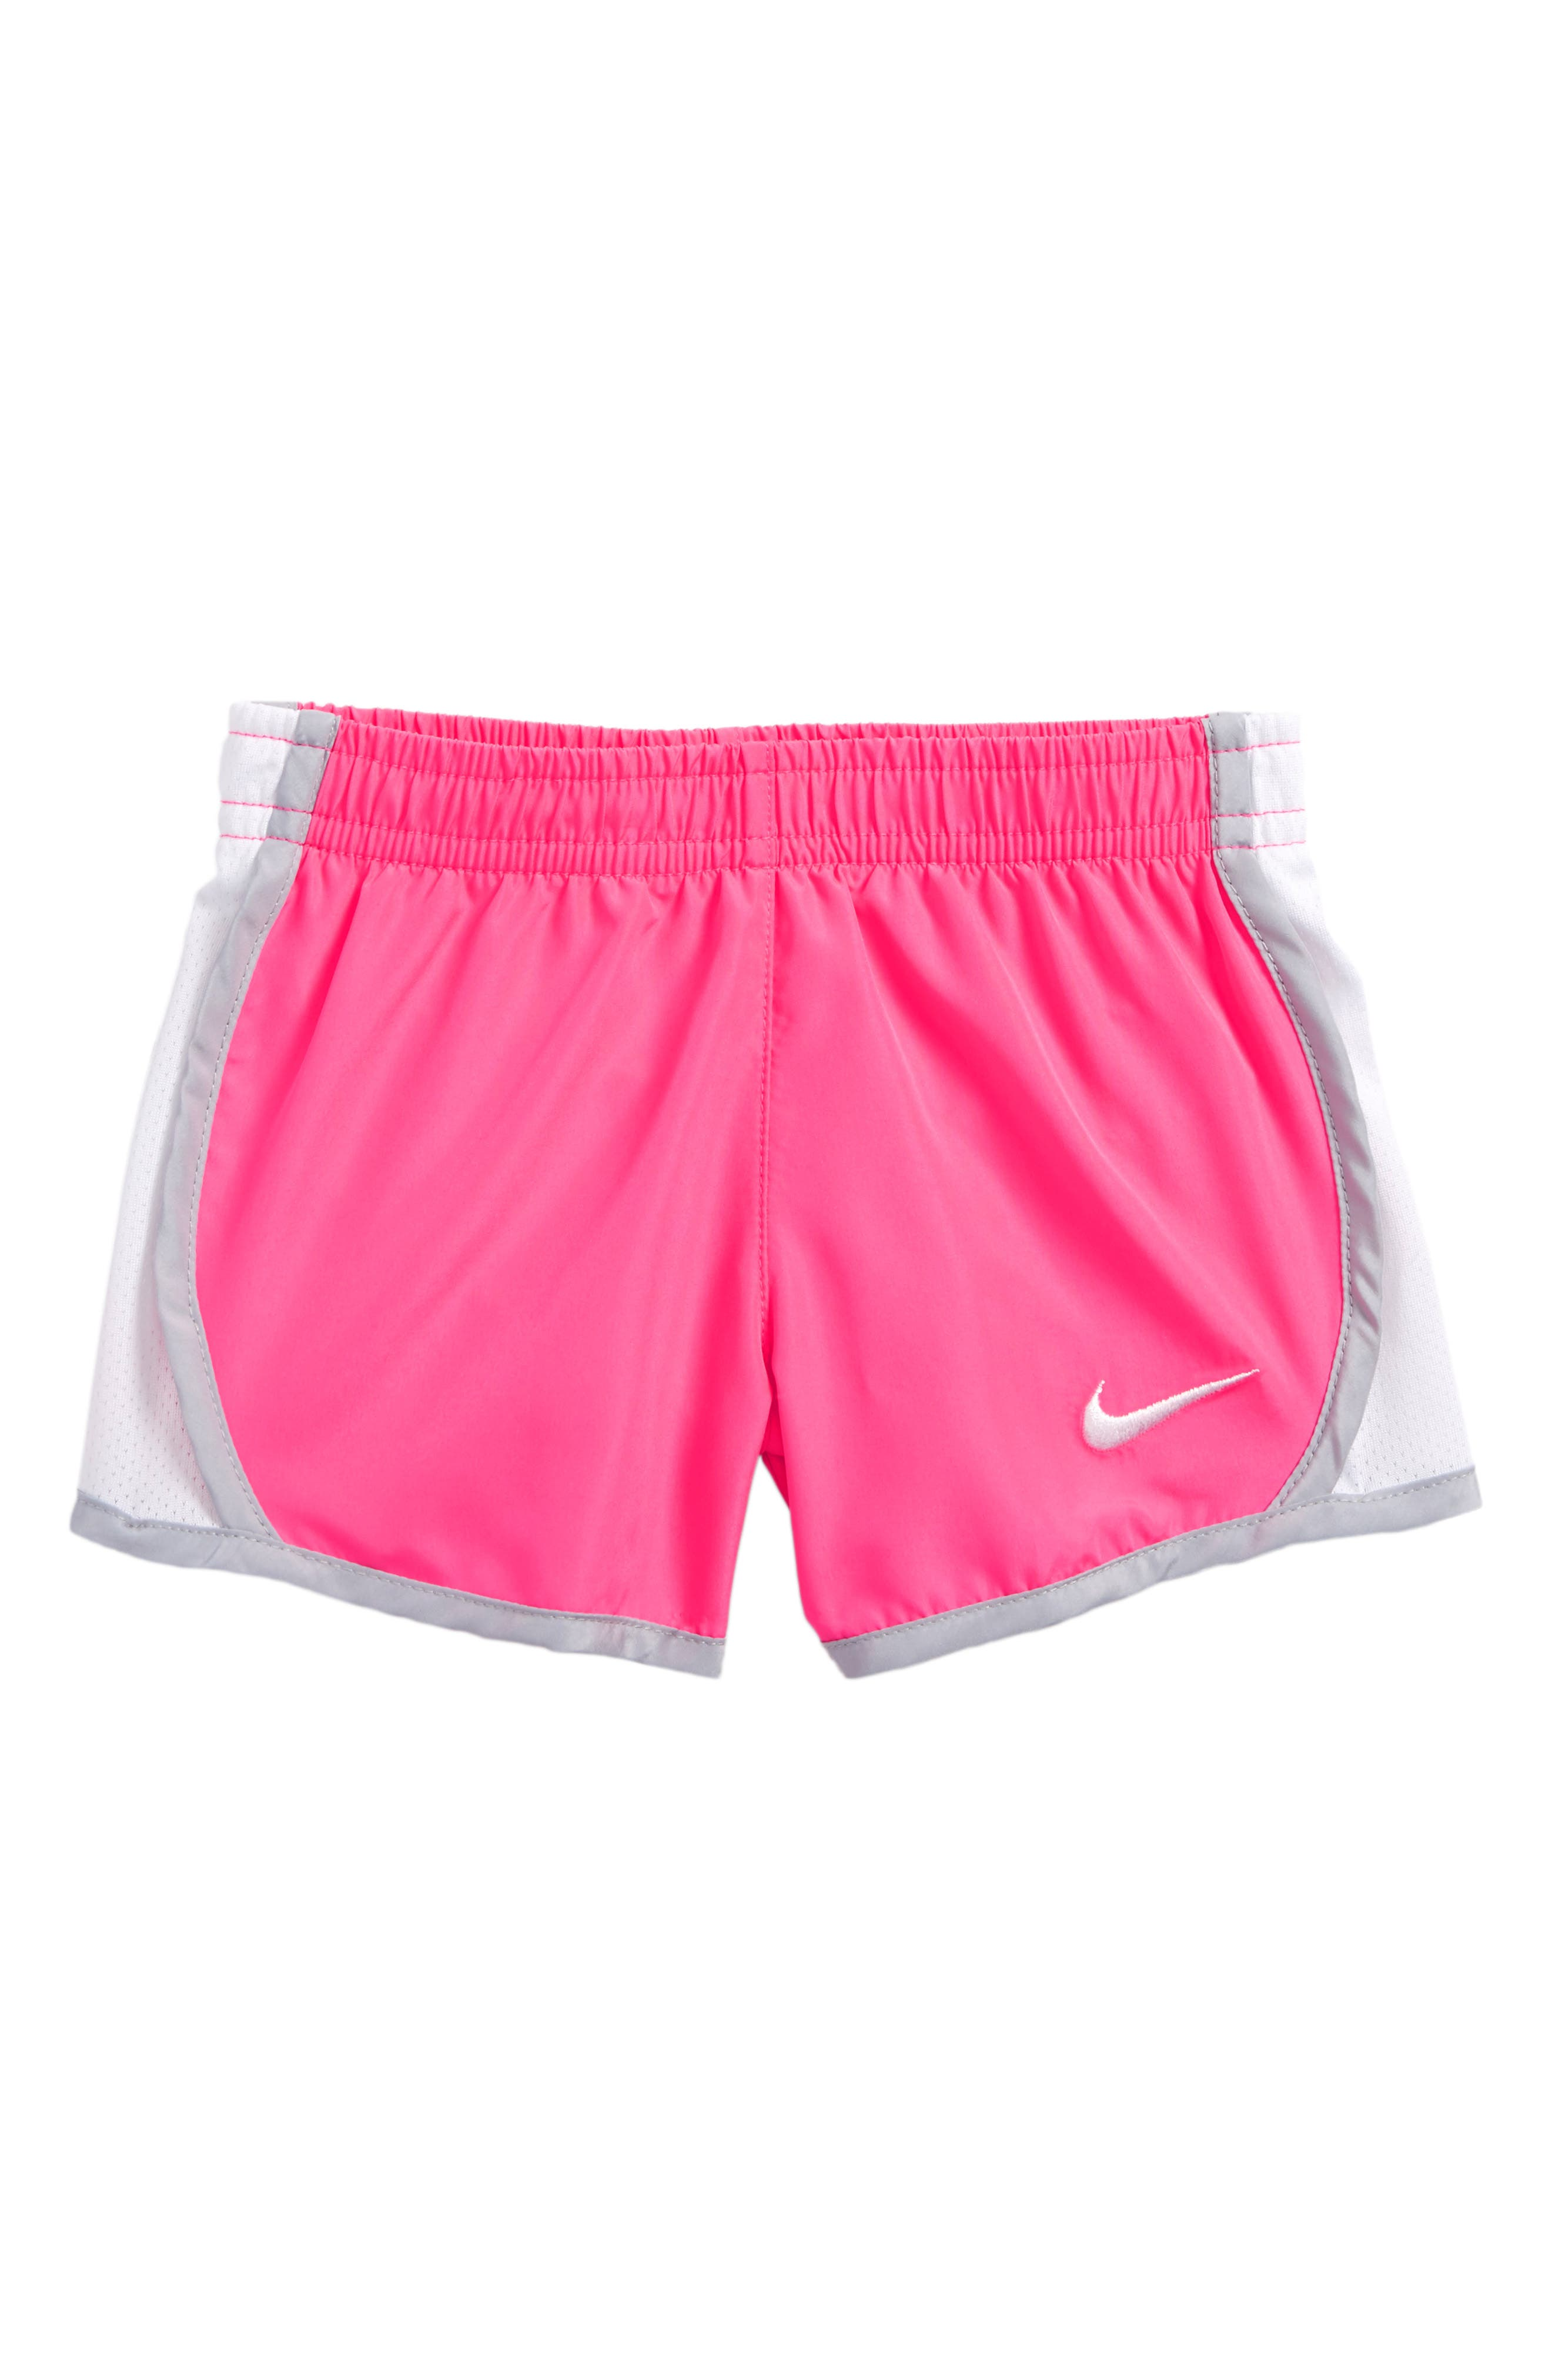 Nike 'Tempo' Dri-FIT Shorts (Baby Girls)